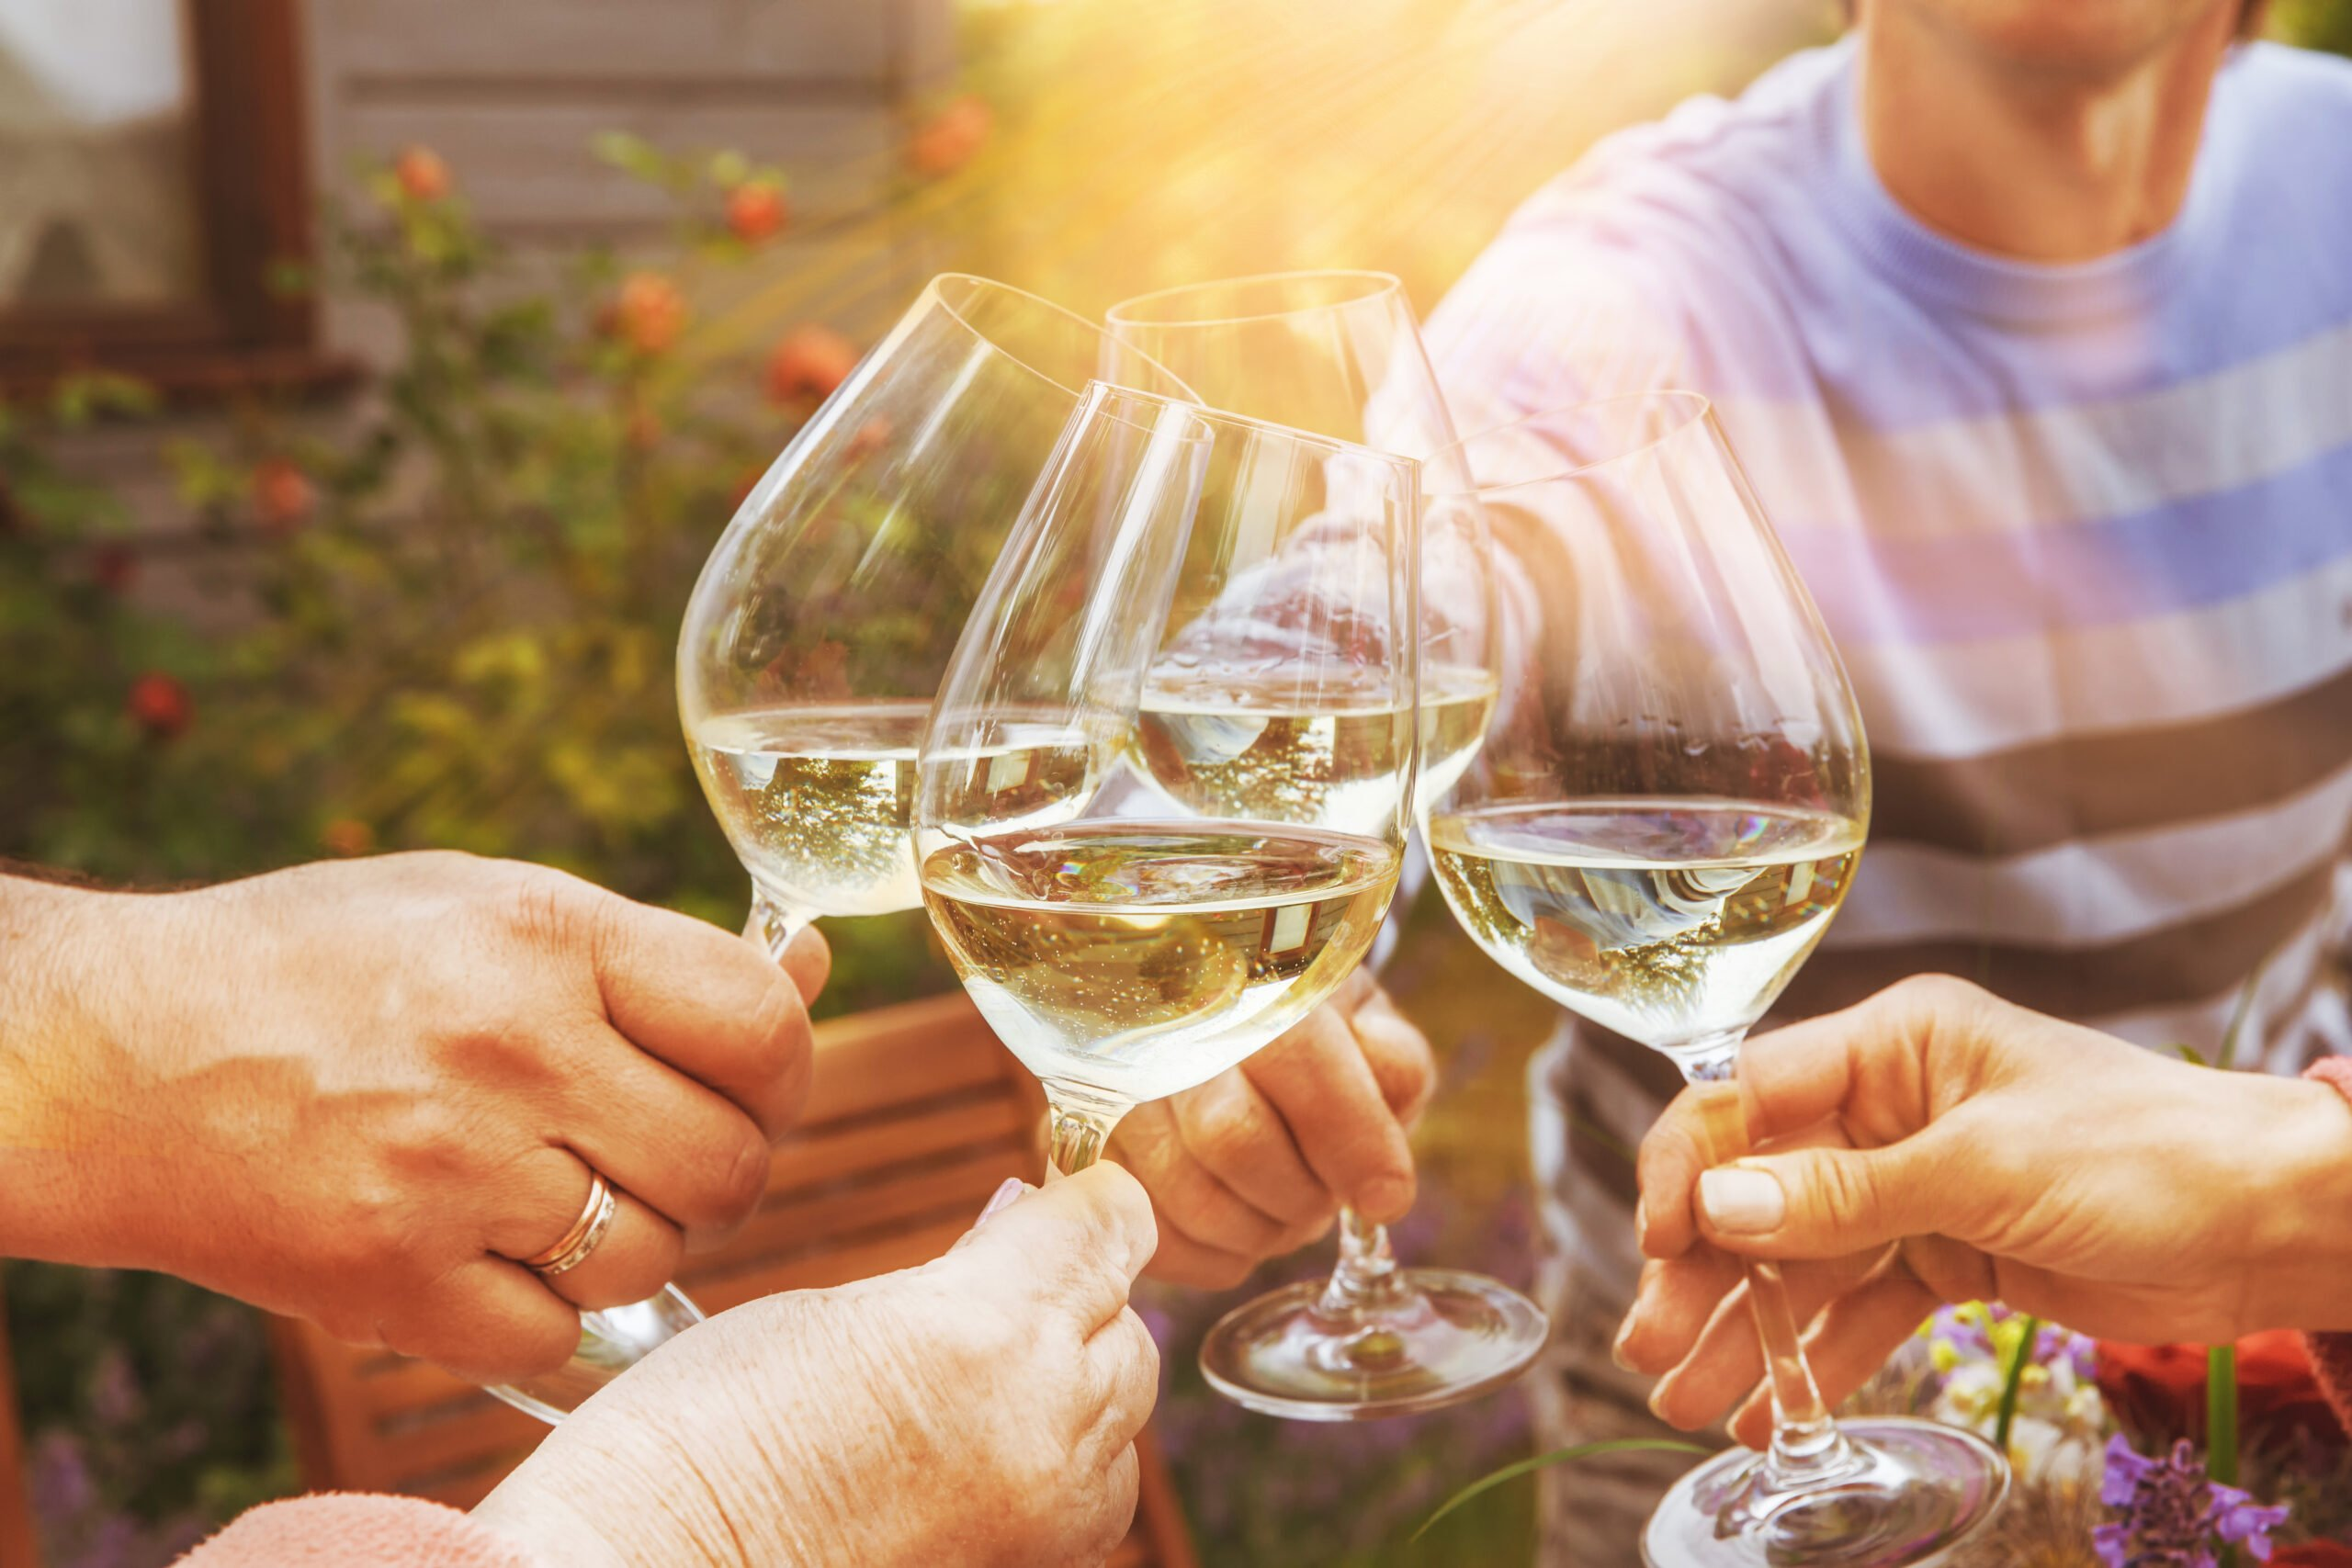 Taste The Wine With Some New Friends On The Txakoli Wine Tasting Tour From Bilbao